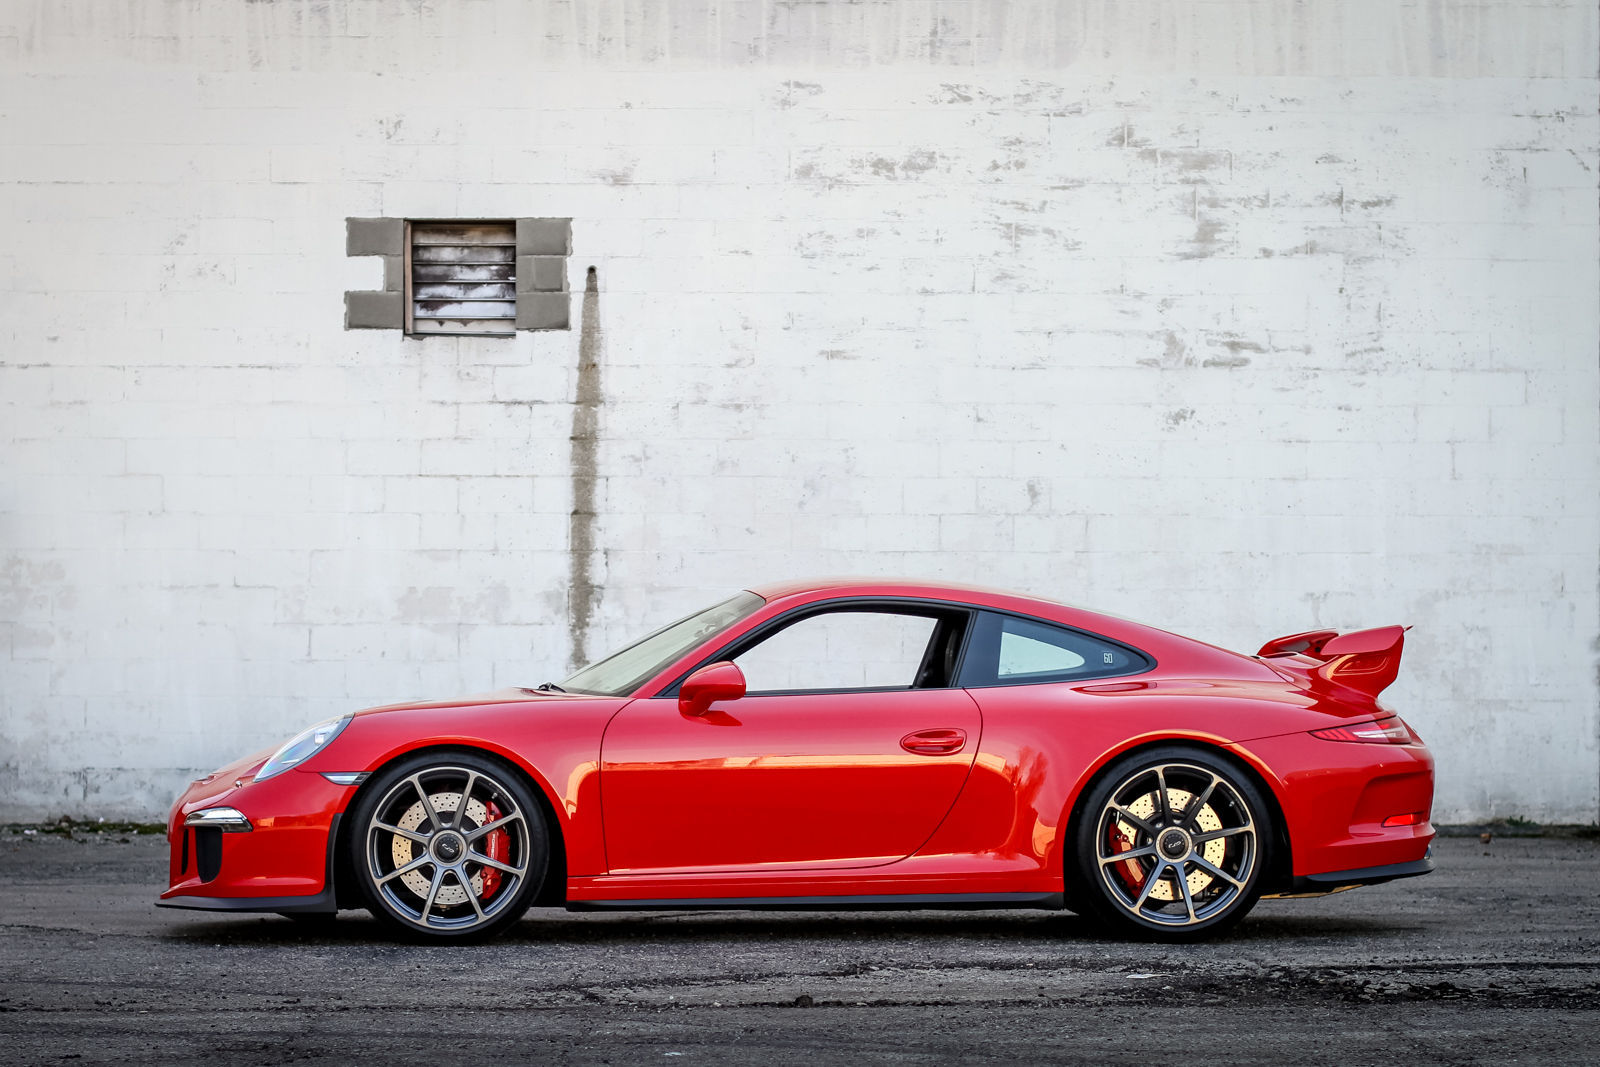 2015 Porsche 911 | Alan Coleman's Porsche 991 GT3 on Forgeline One Piece Forged Monoblock GE1 Wheels